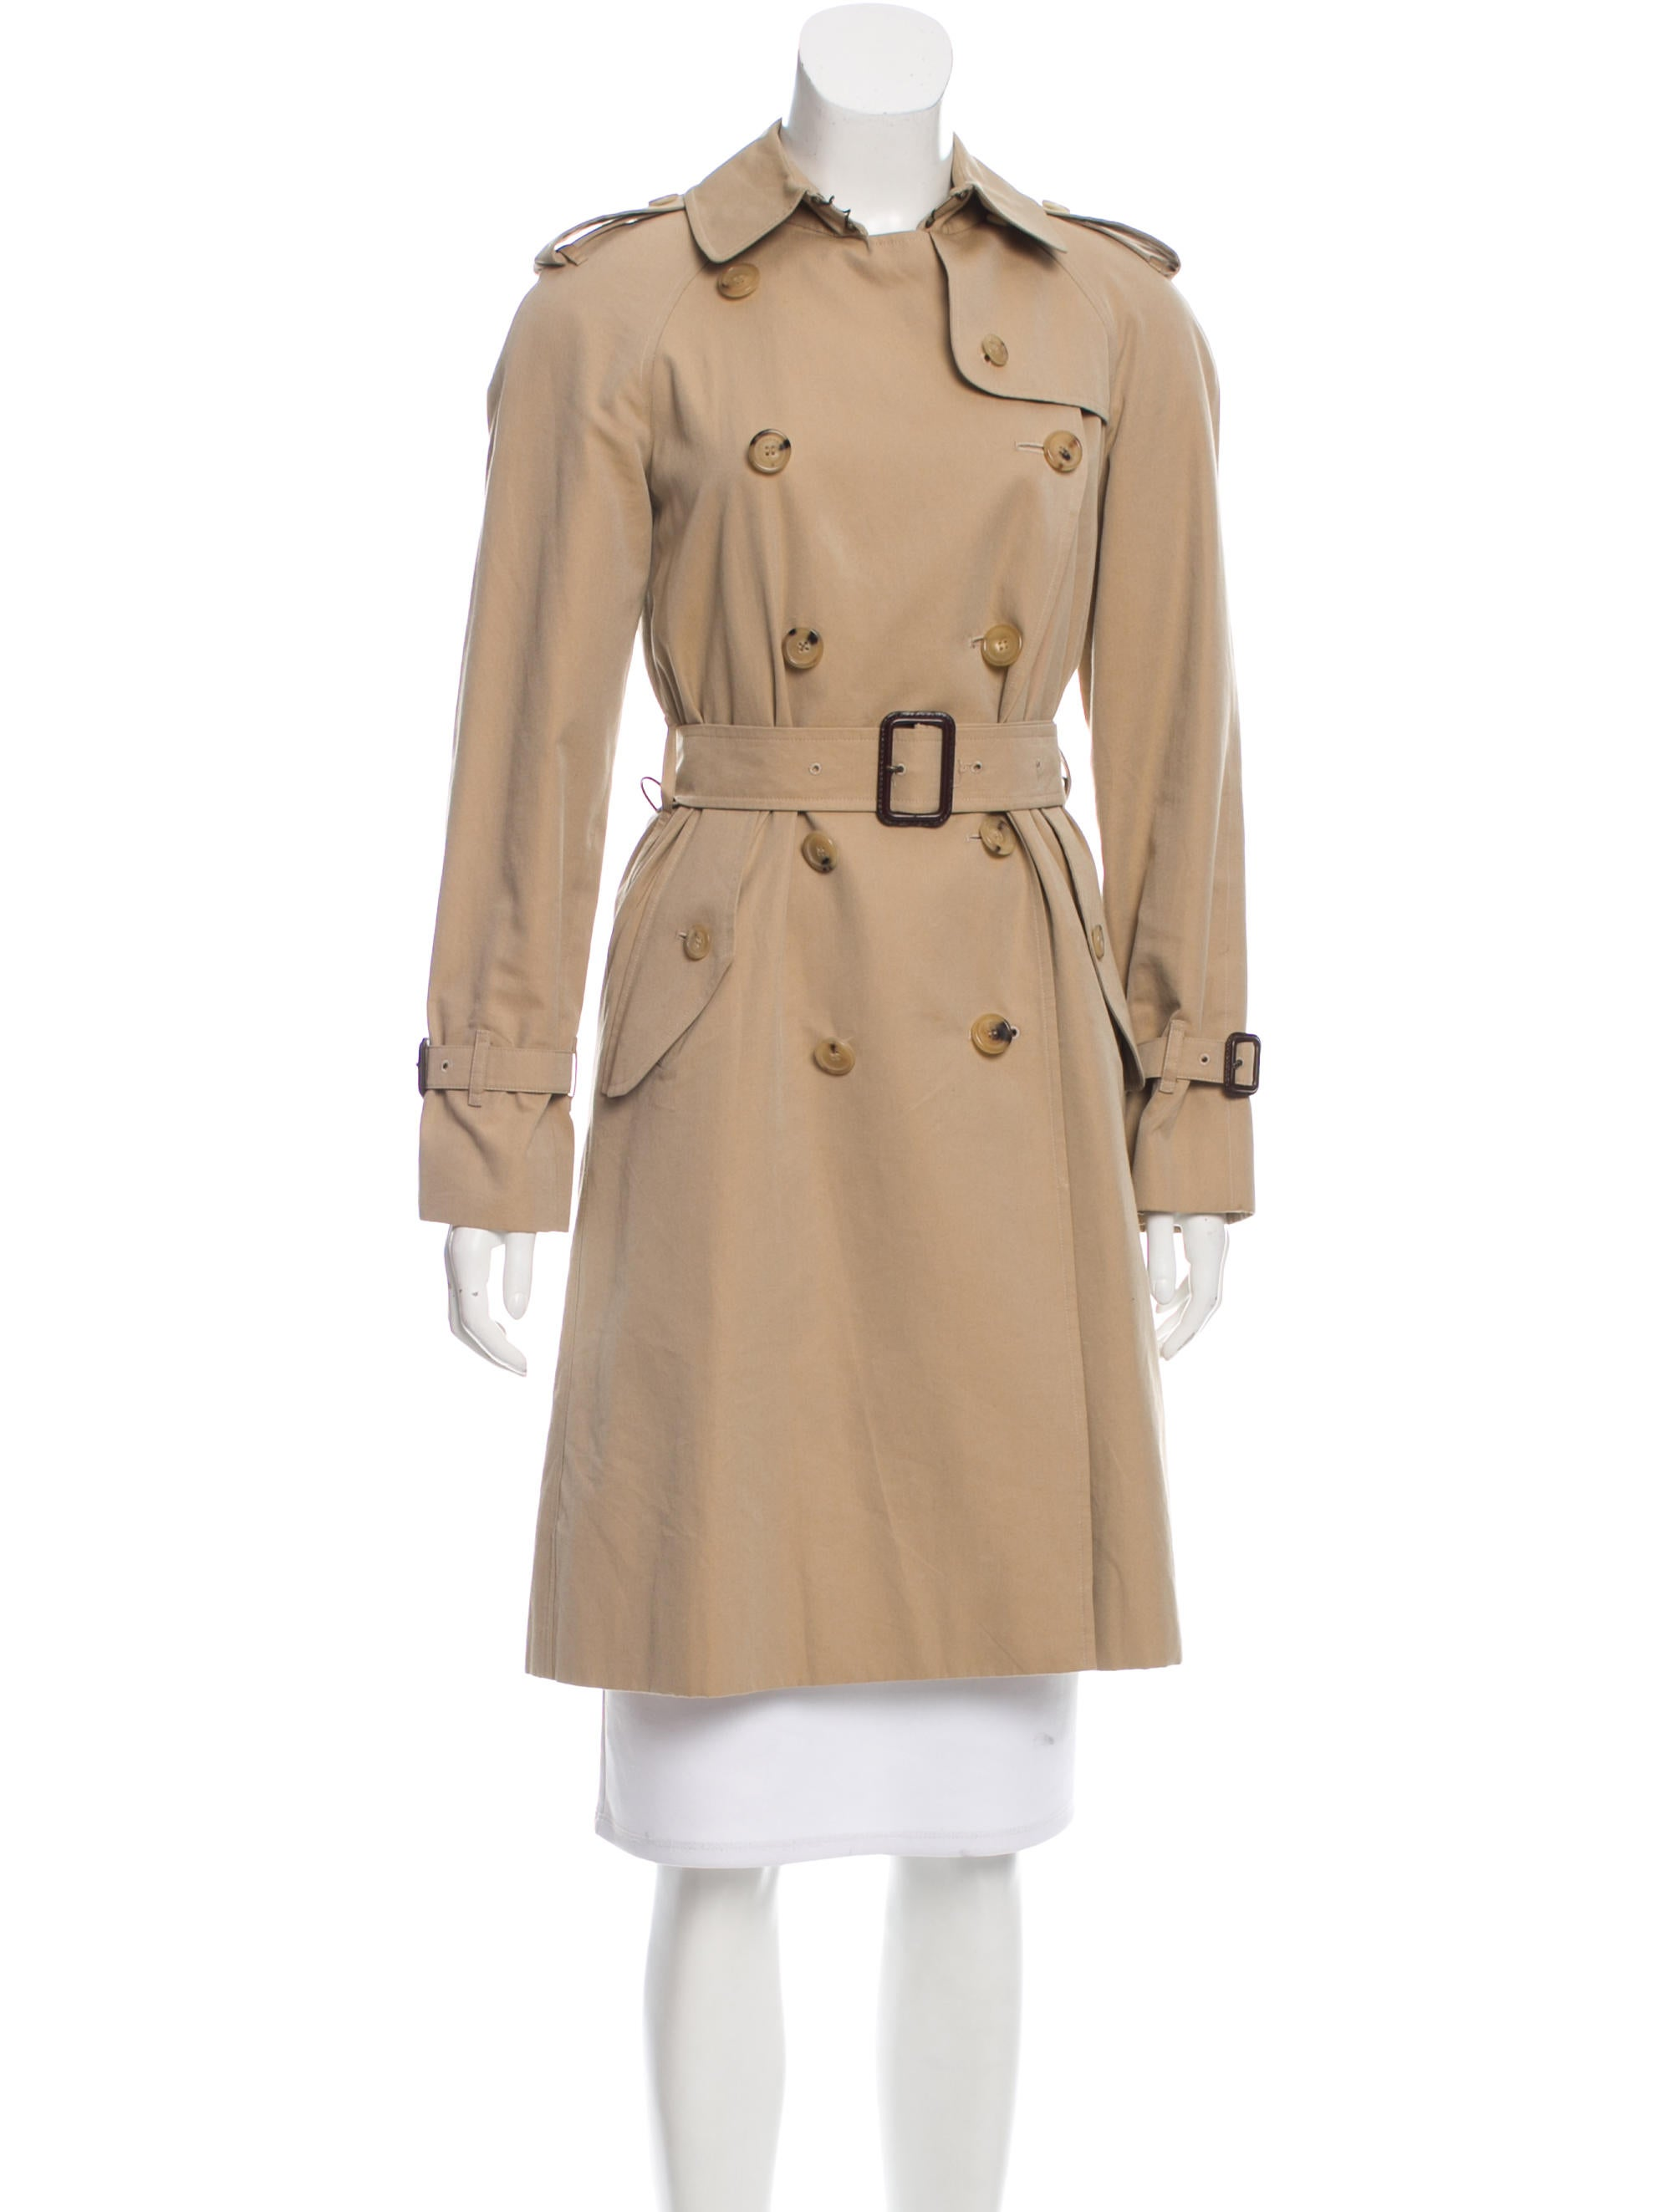 Find the best selection of cheap double breasted trench coat in bulk here at nichapie.ml Including trench coat womens and street fashion autumn trench coat at wholesale prices from double breasted trench coat manufacturers. Source discount and high quality products in hundreds of categories wholesale direct from China.